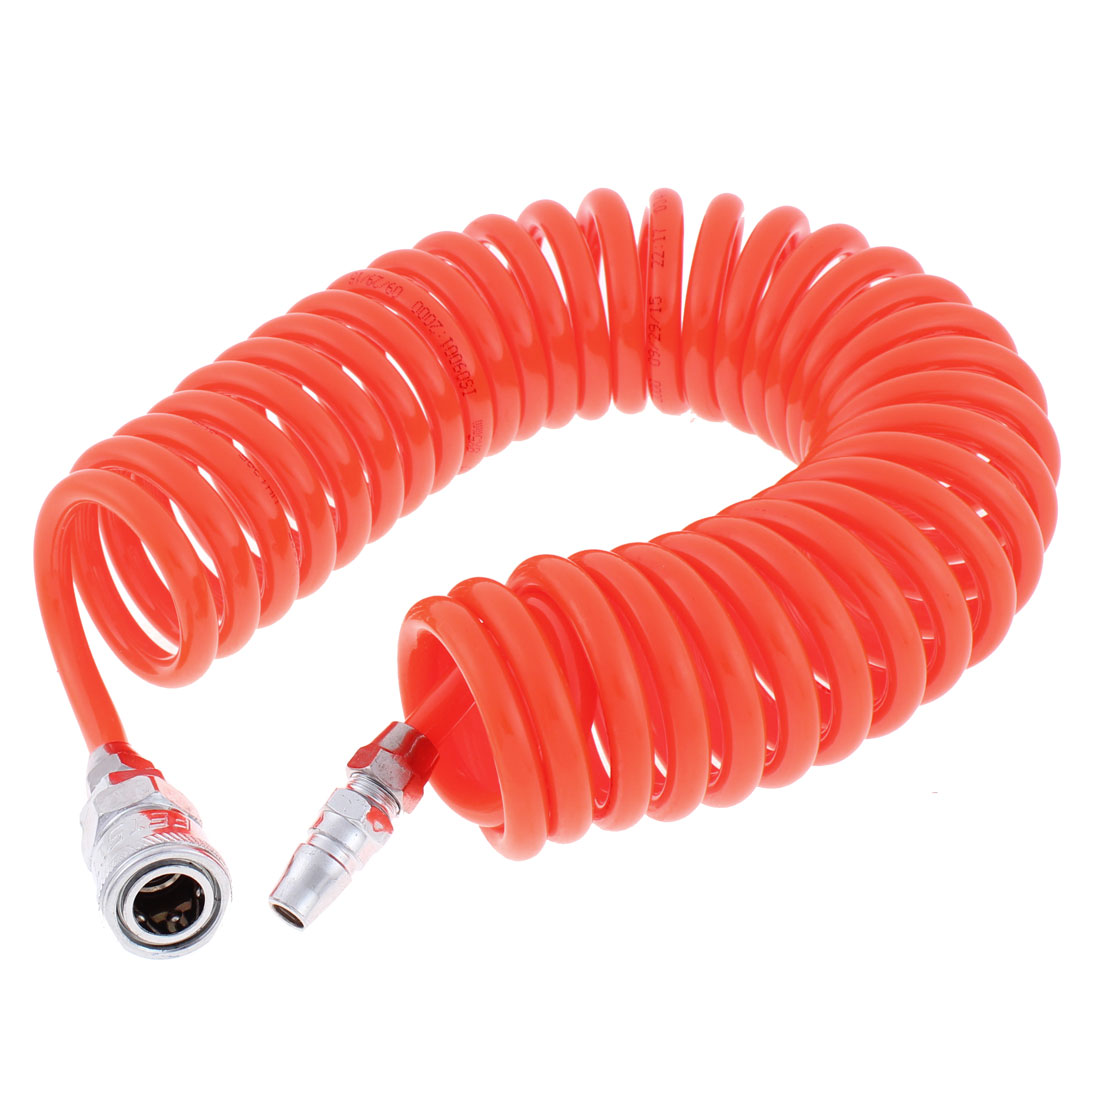 6 Meters Length 8mm x 5mm Polyurethane Coiled Air Hose Pipe Orange